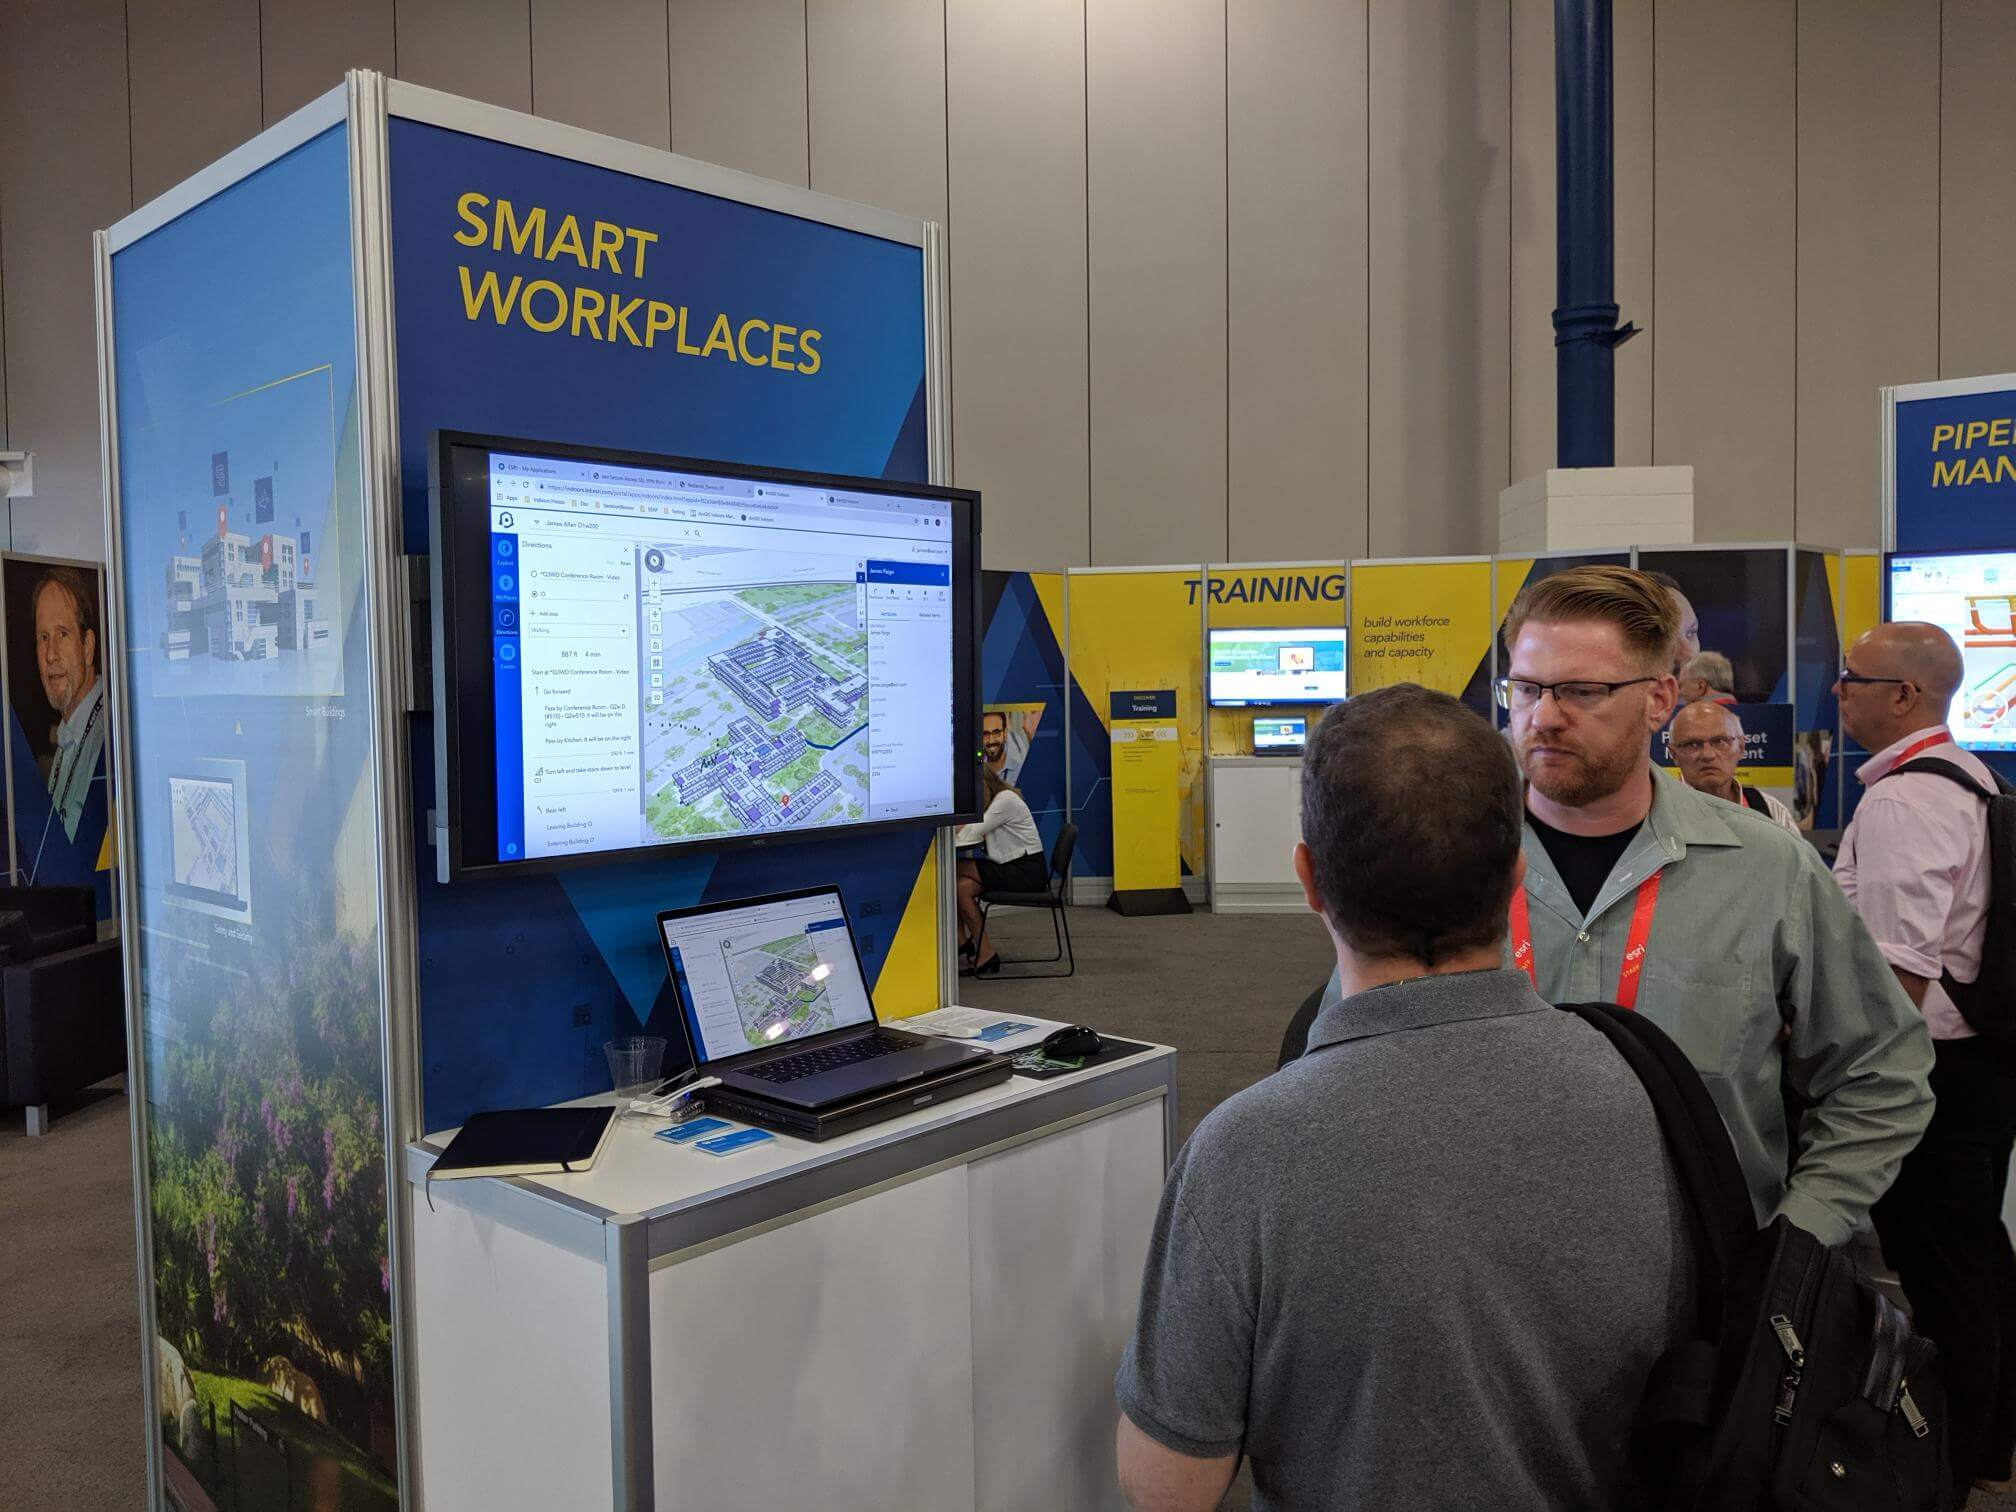 Jeff Archer presenting ArcGIS Indoors for smart workplaces at the PUG Conference booth